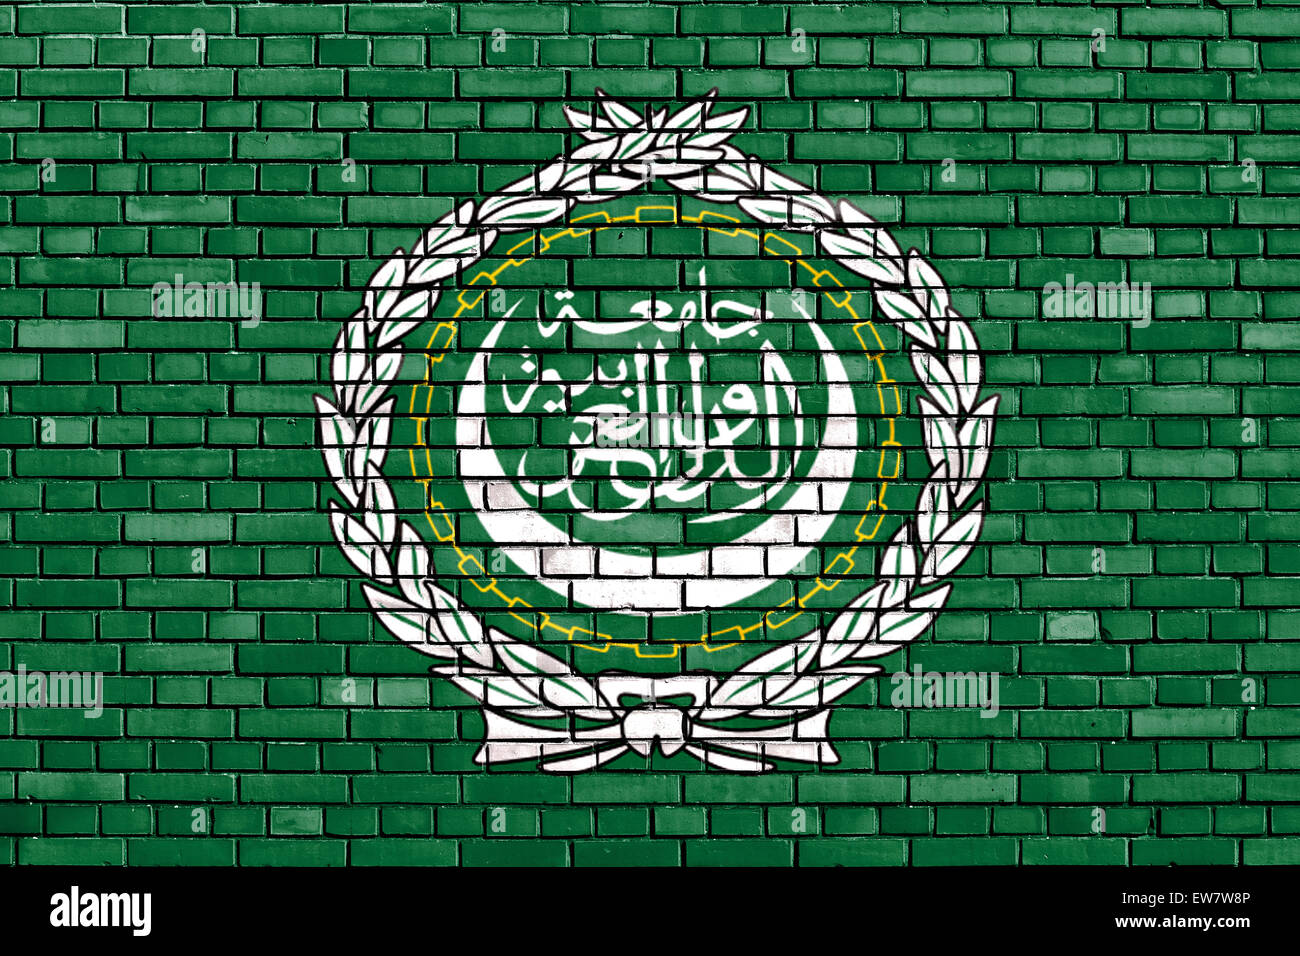 flag of Arab League painted on brick wall - Stock Image